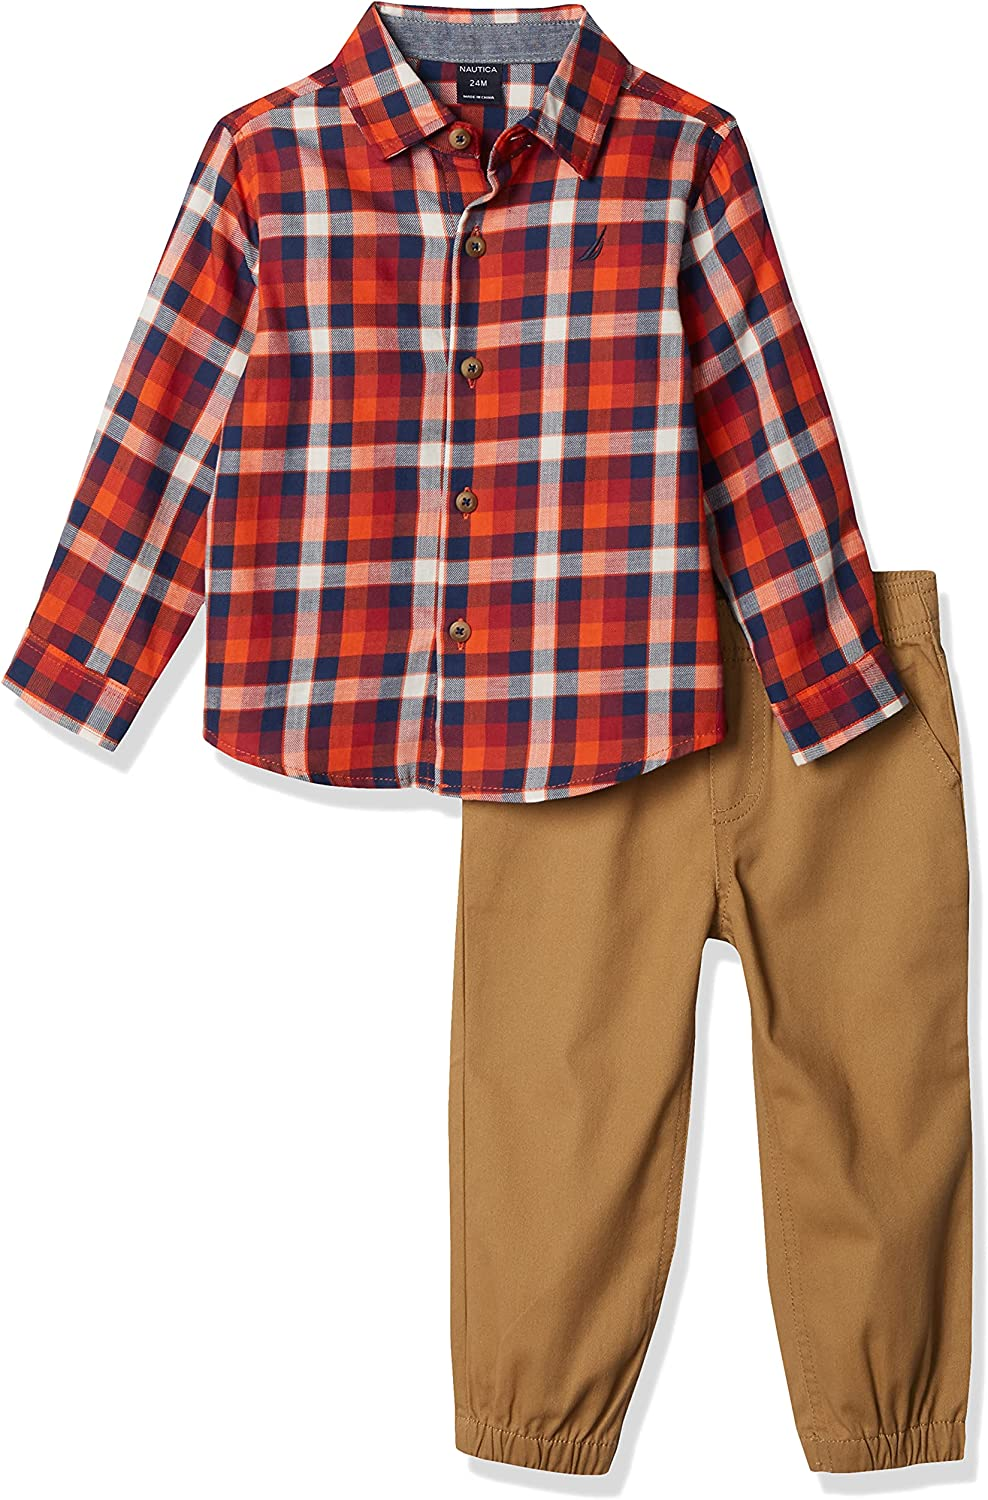 Nautica Discount is also underway Baby Boys Fort Worth Mall 2 Pieces Pants Set Shirt